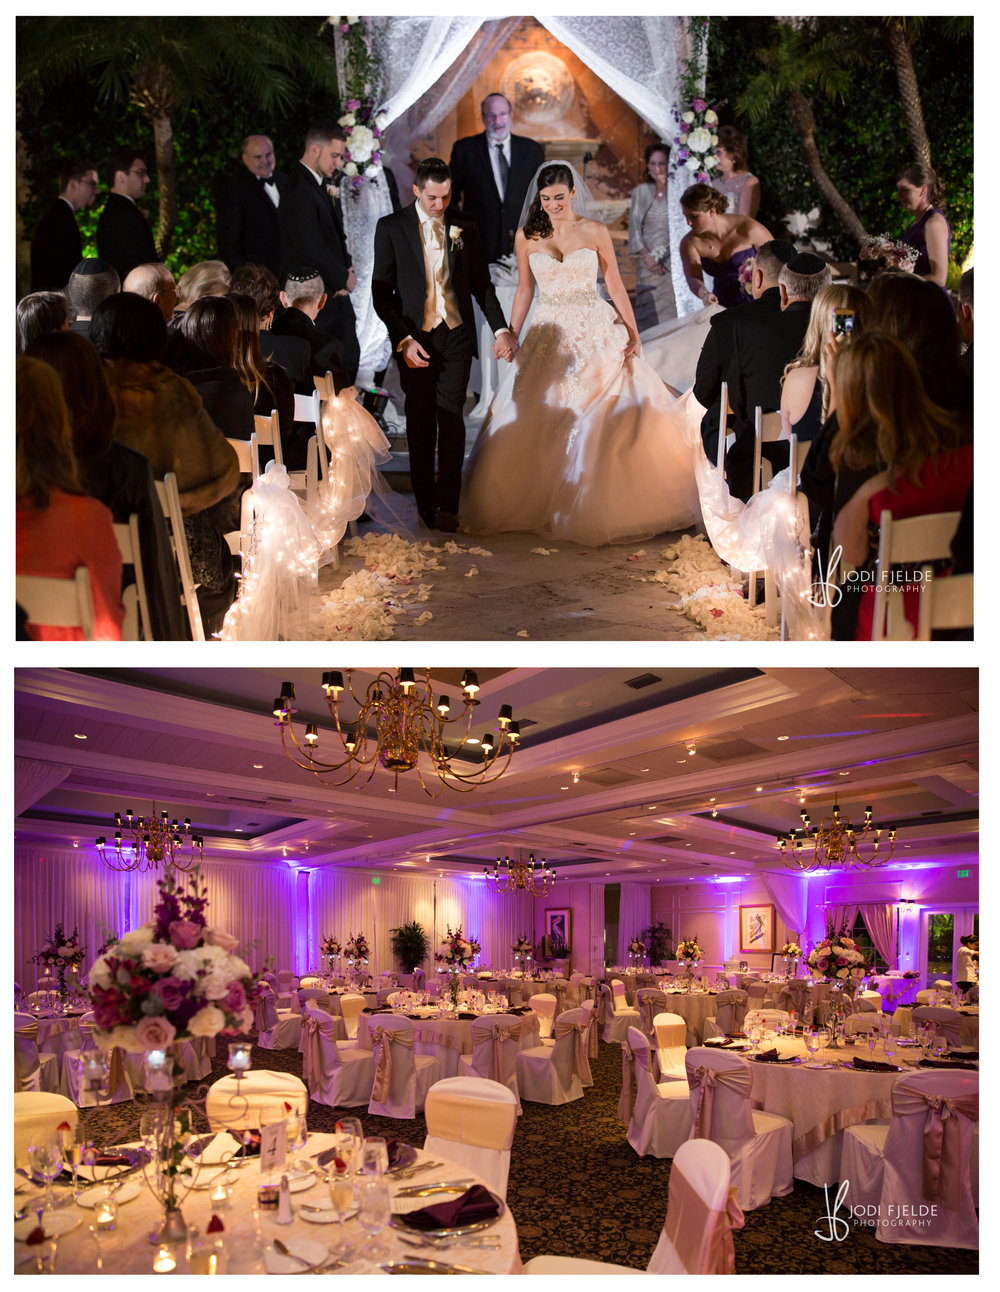 Benvenuto_Palm_Beach_Wedding_Jewish_Michelle & Jason_Jodi_Fjedle_Photography 42.jpg